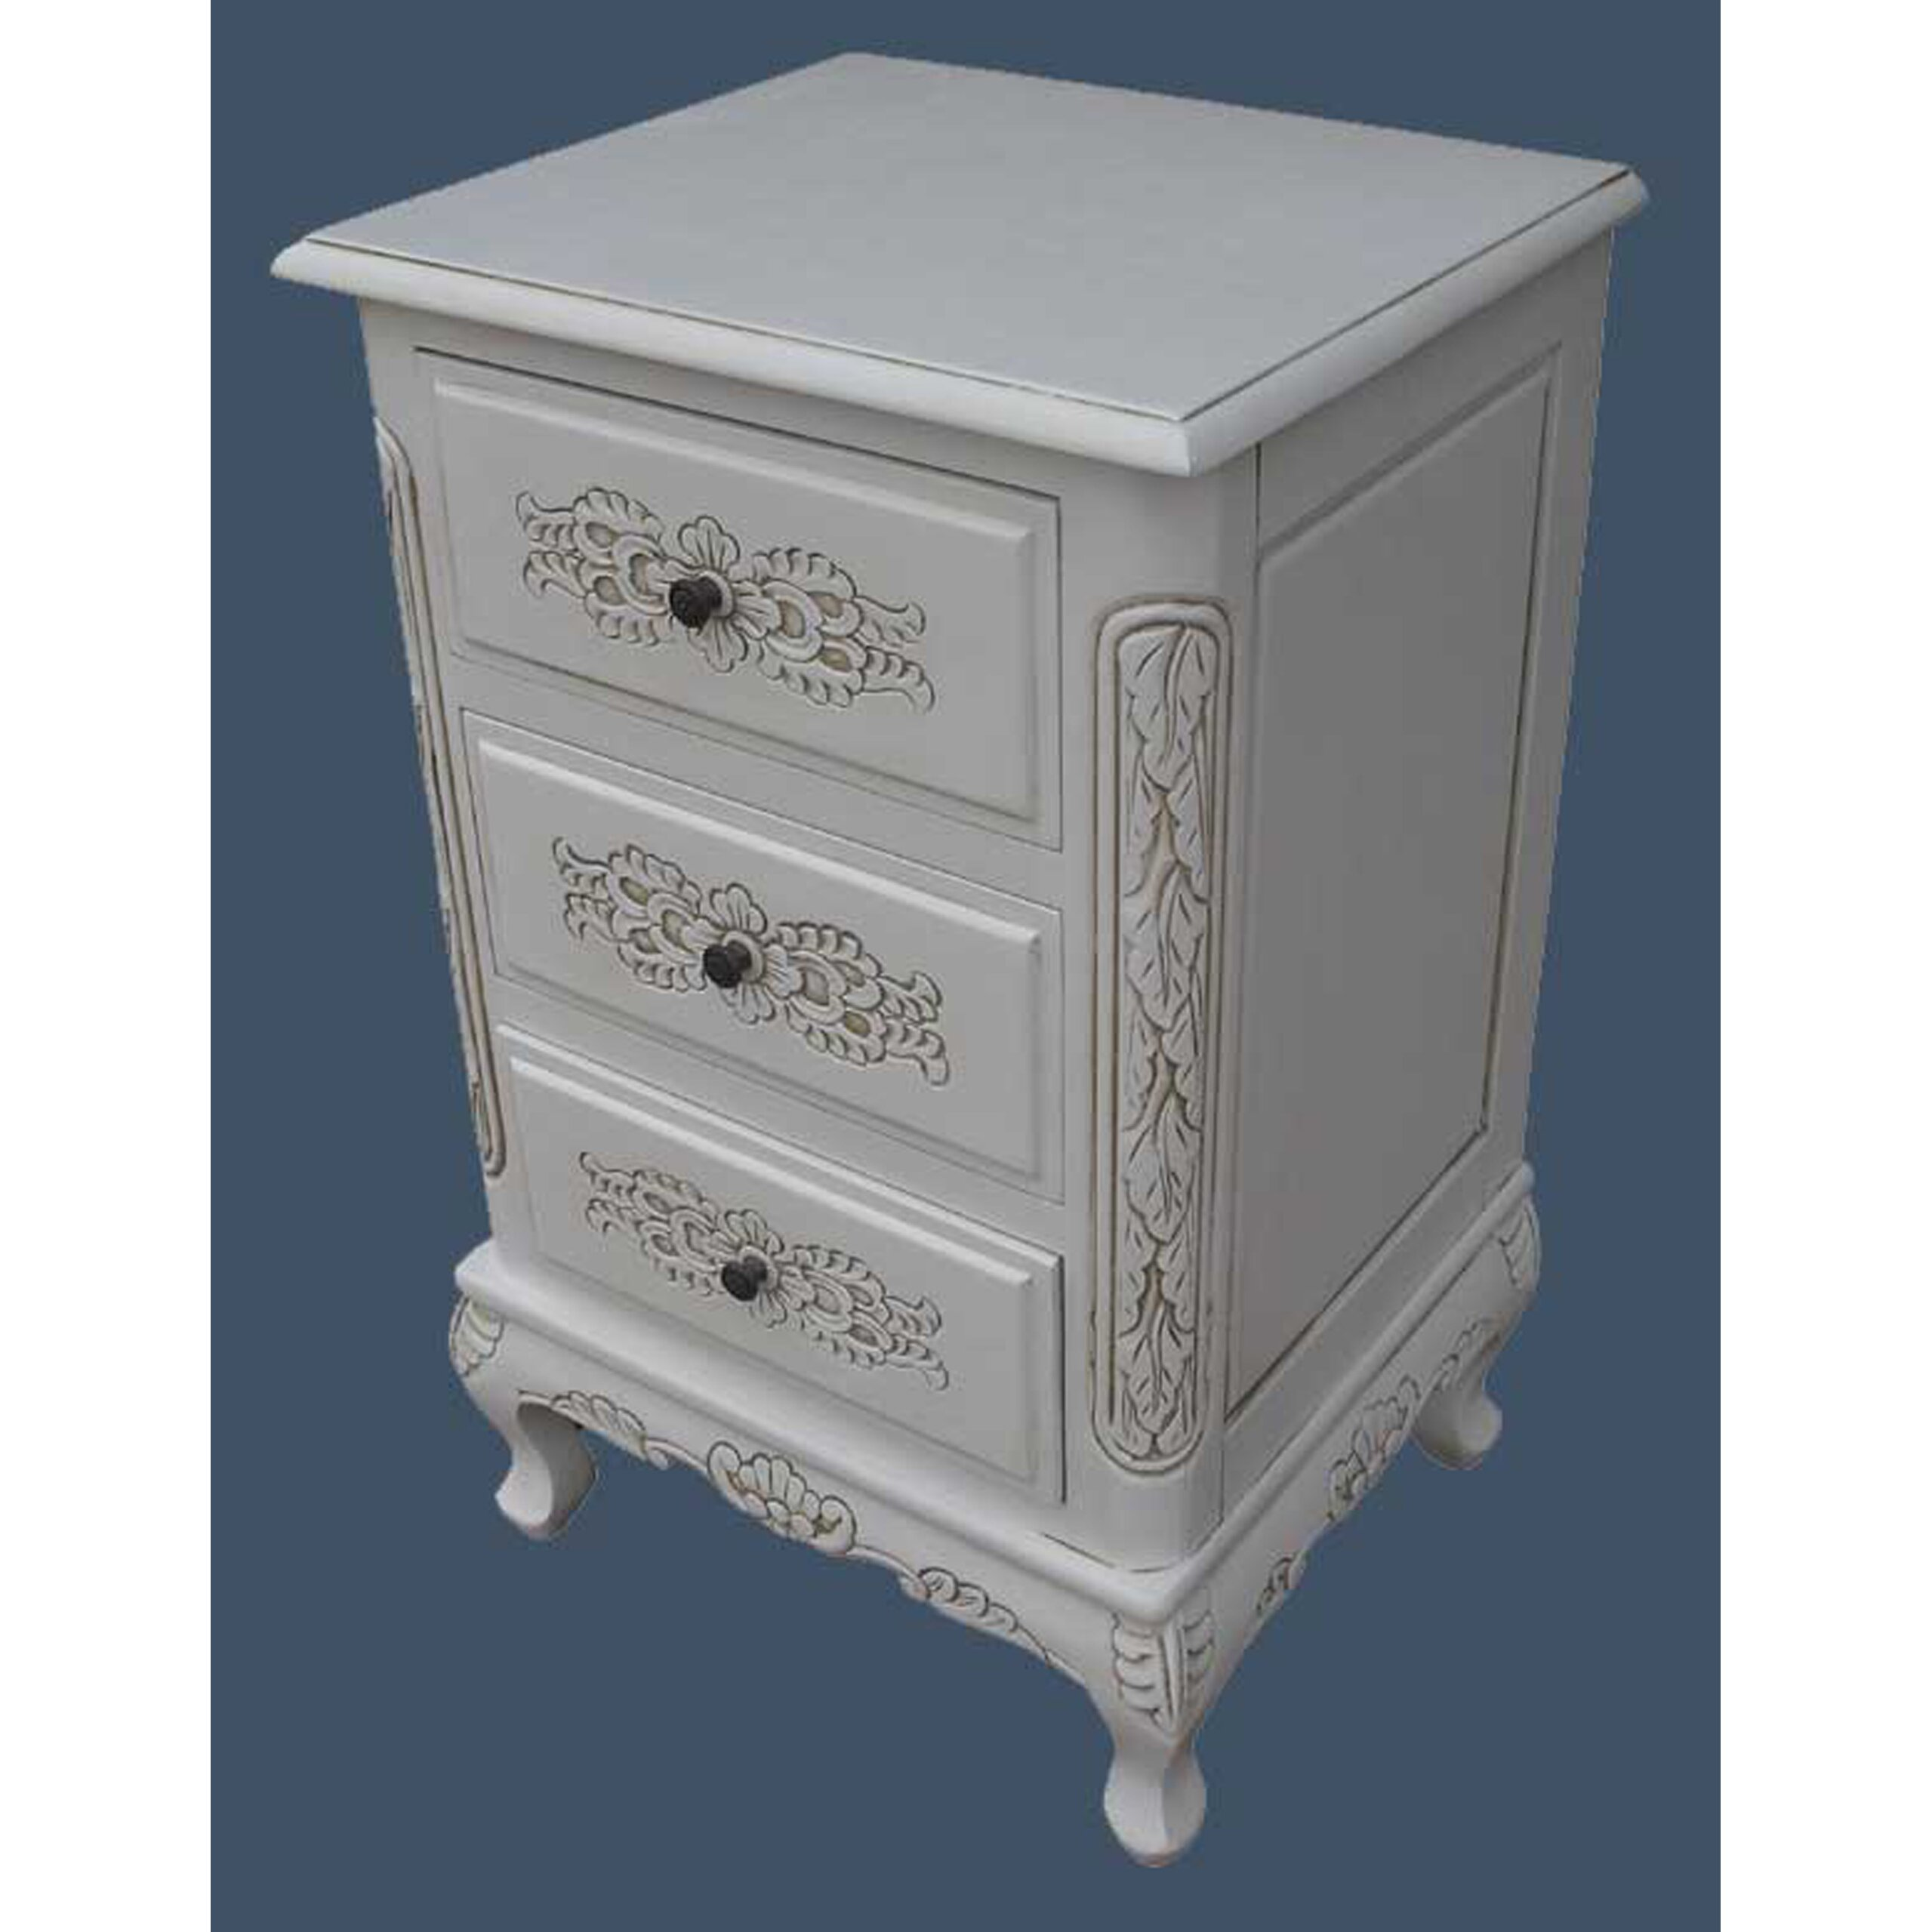 Grand international decor french style 3 drawer chest of for International decor